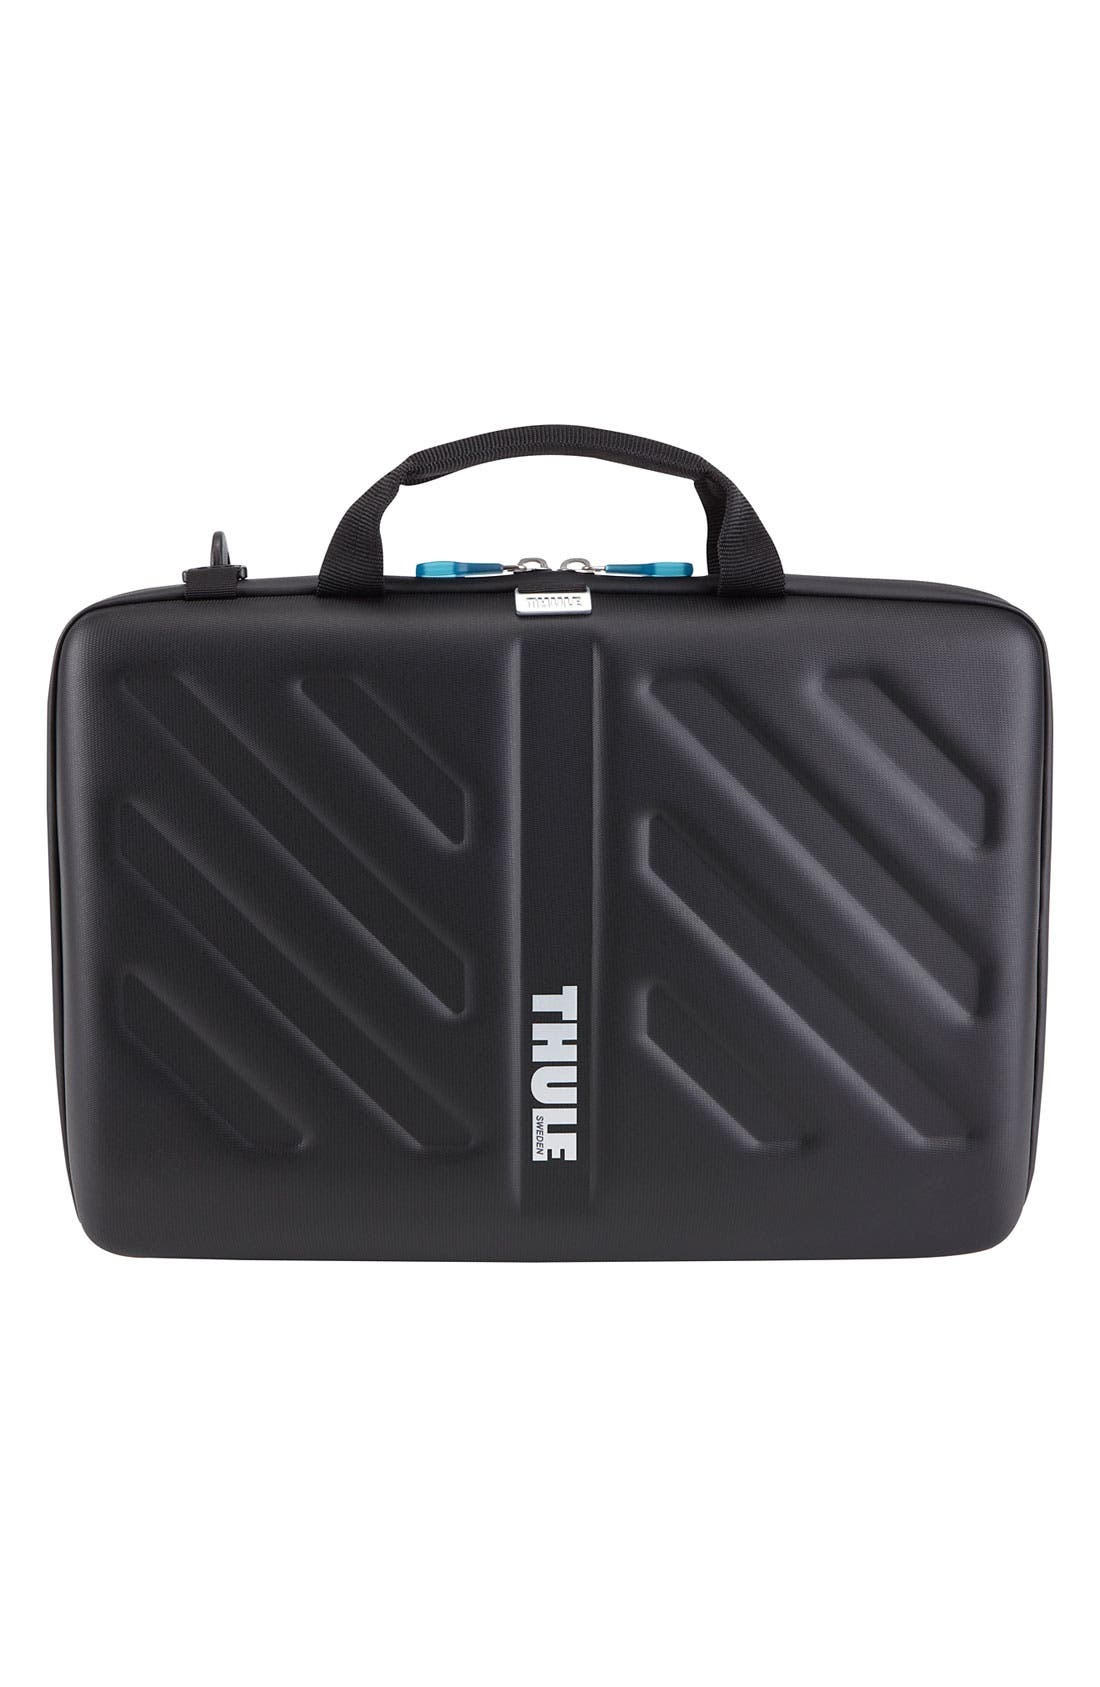 Main Image - Thule 13 Inch MacBook Pro Laptop Attaché Case